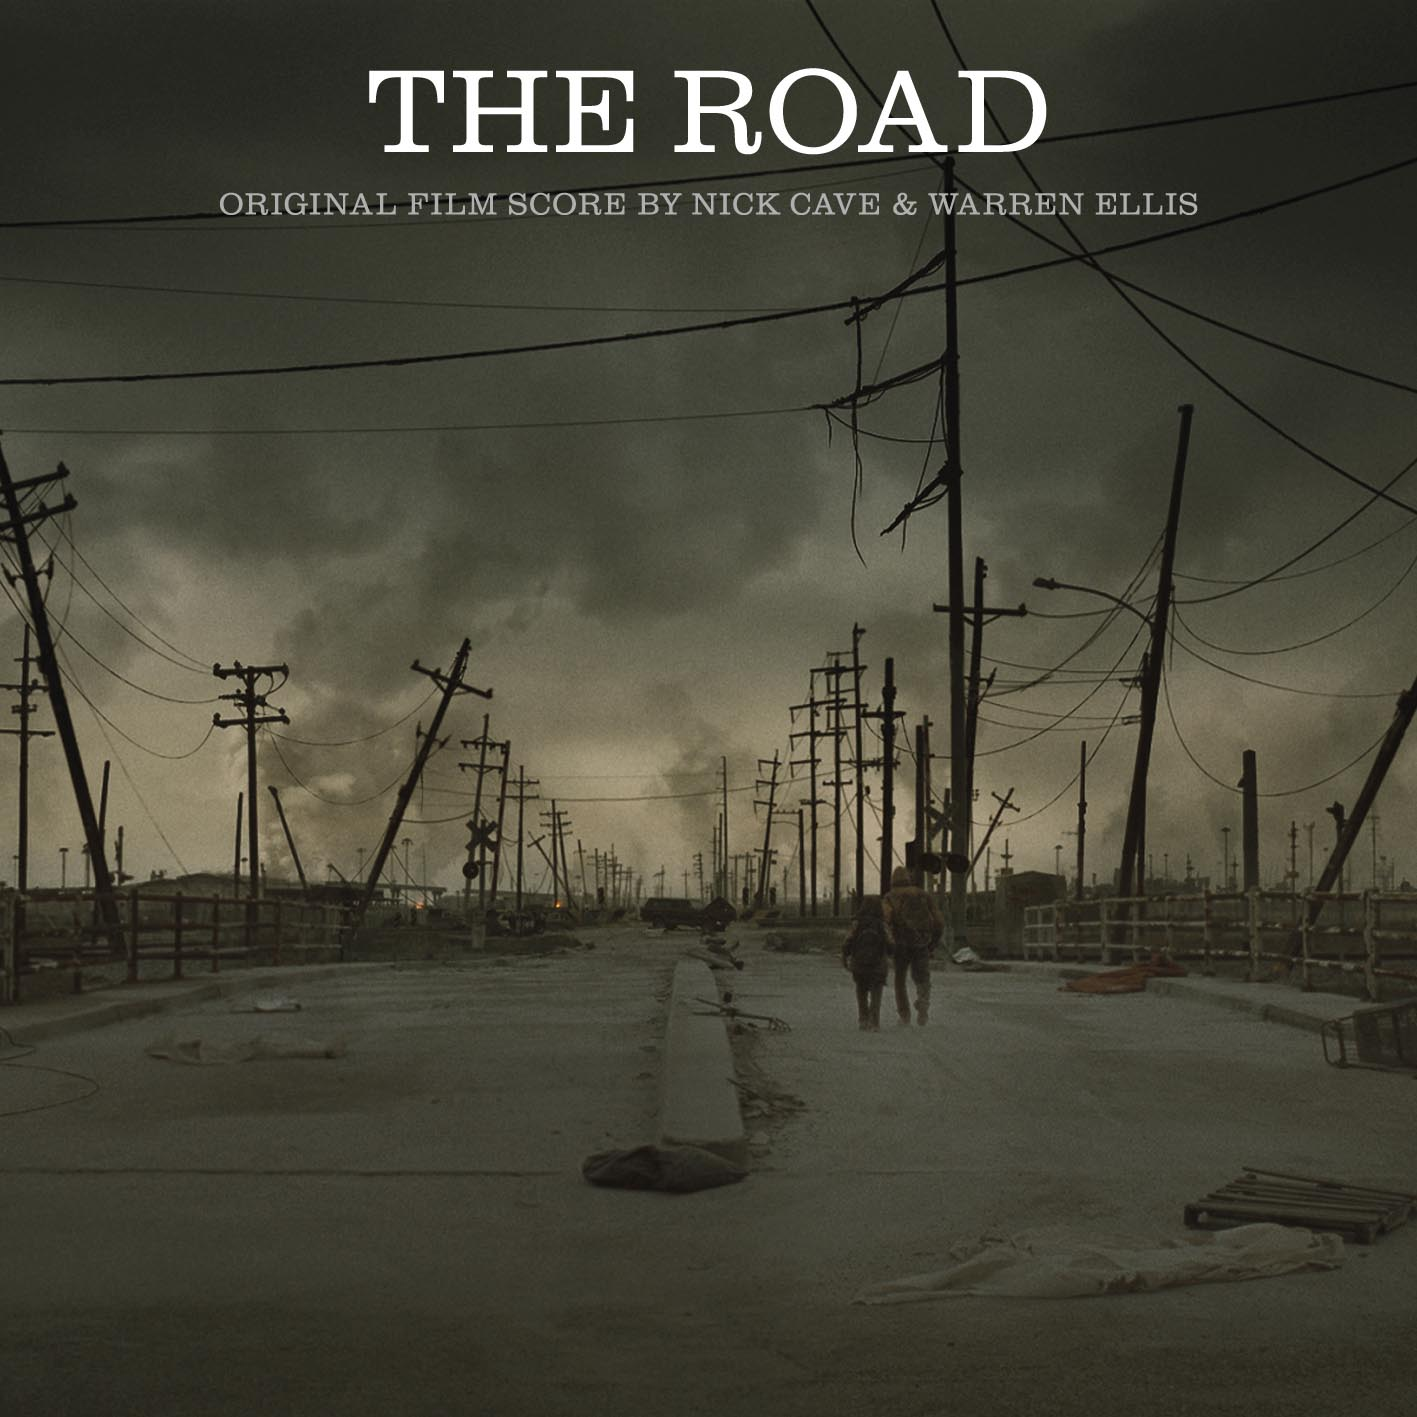 mccarthys novel the road is about Cormac mccarthy (born charles mccarthy july 20, 1933) is an american novelist, playwright, and screenwriter oprah winfrey selected mccarthy's 2006 novel the road as the april 2007 selection for her book club as a result.